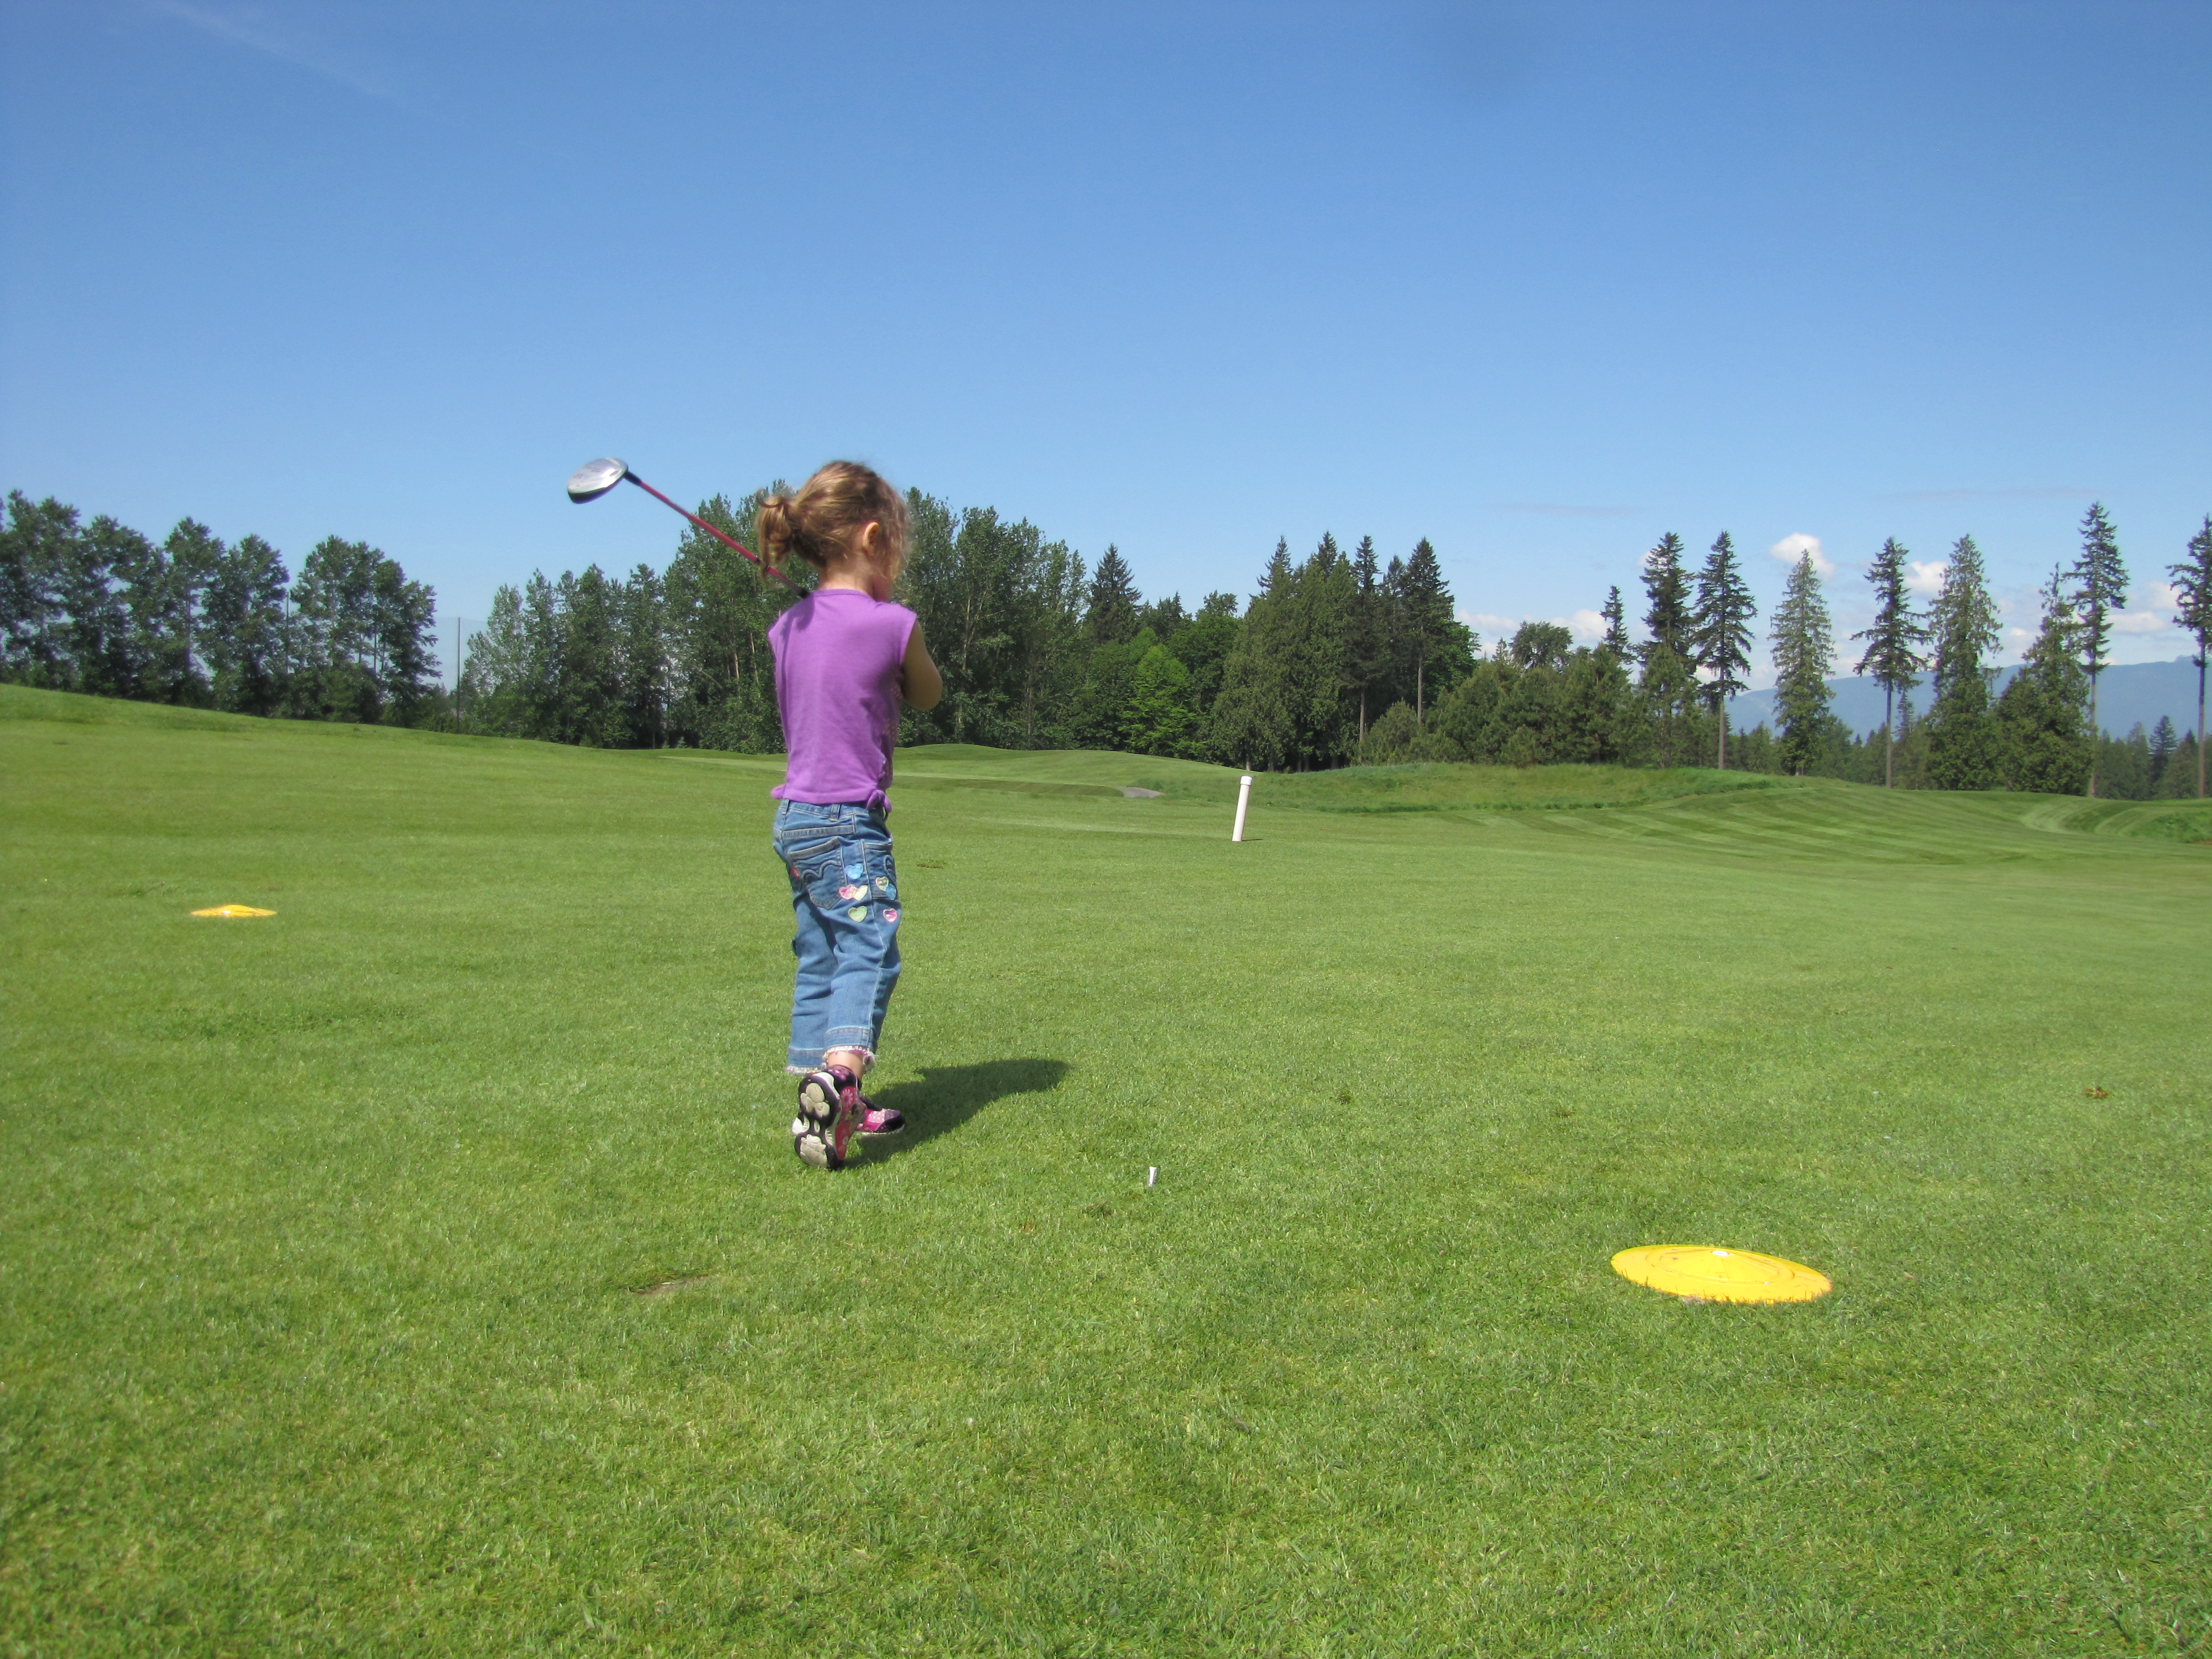 Little girl playing golf swinging the club